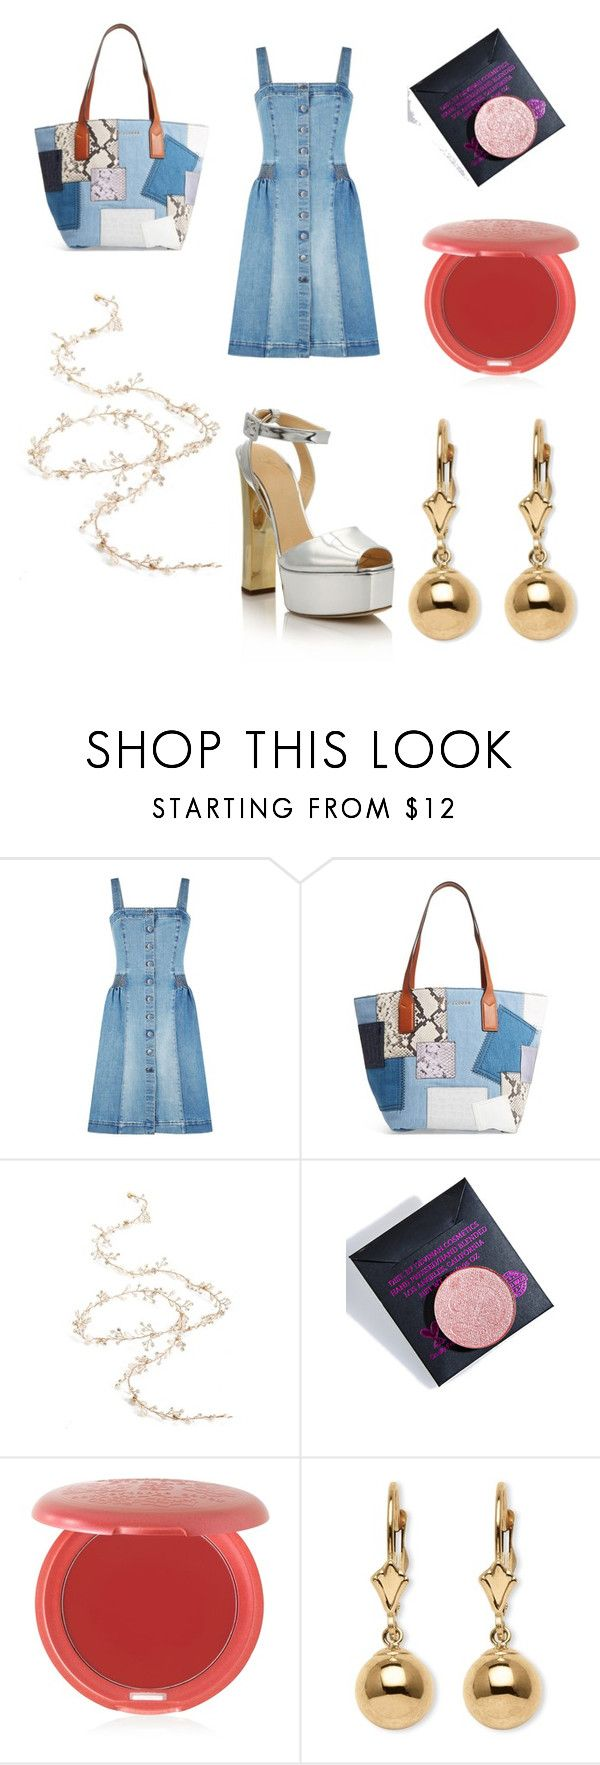 """Untitled #434"" by knmaem on Polyvore featuring STELLA McCARTNEY, Marc Jacobs, Twigs & Honey, Devinah Cosmetics, Stila, Palm Beach Jewelry and Giuseppe Zanotti"